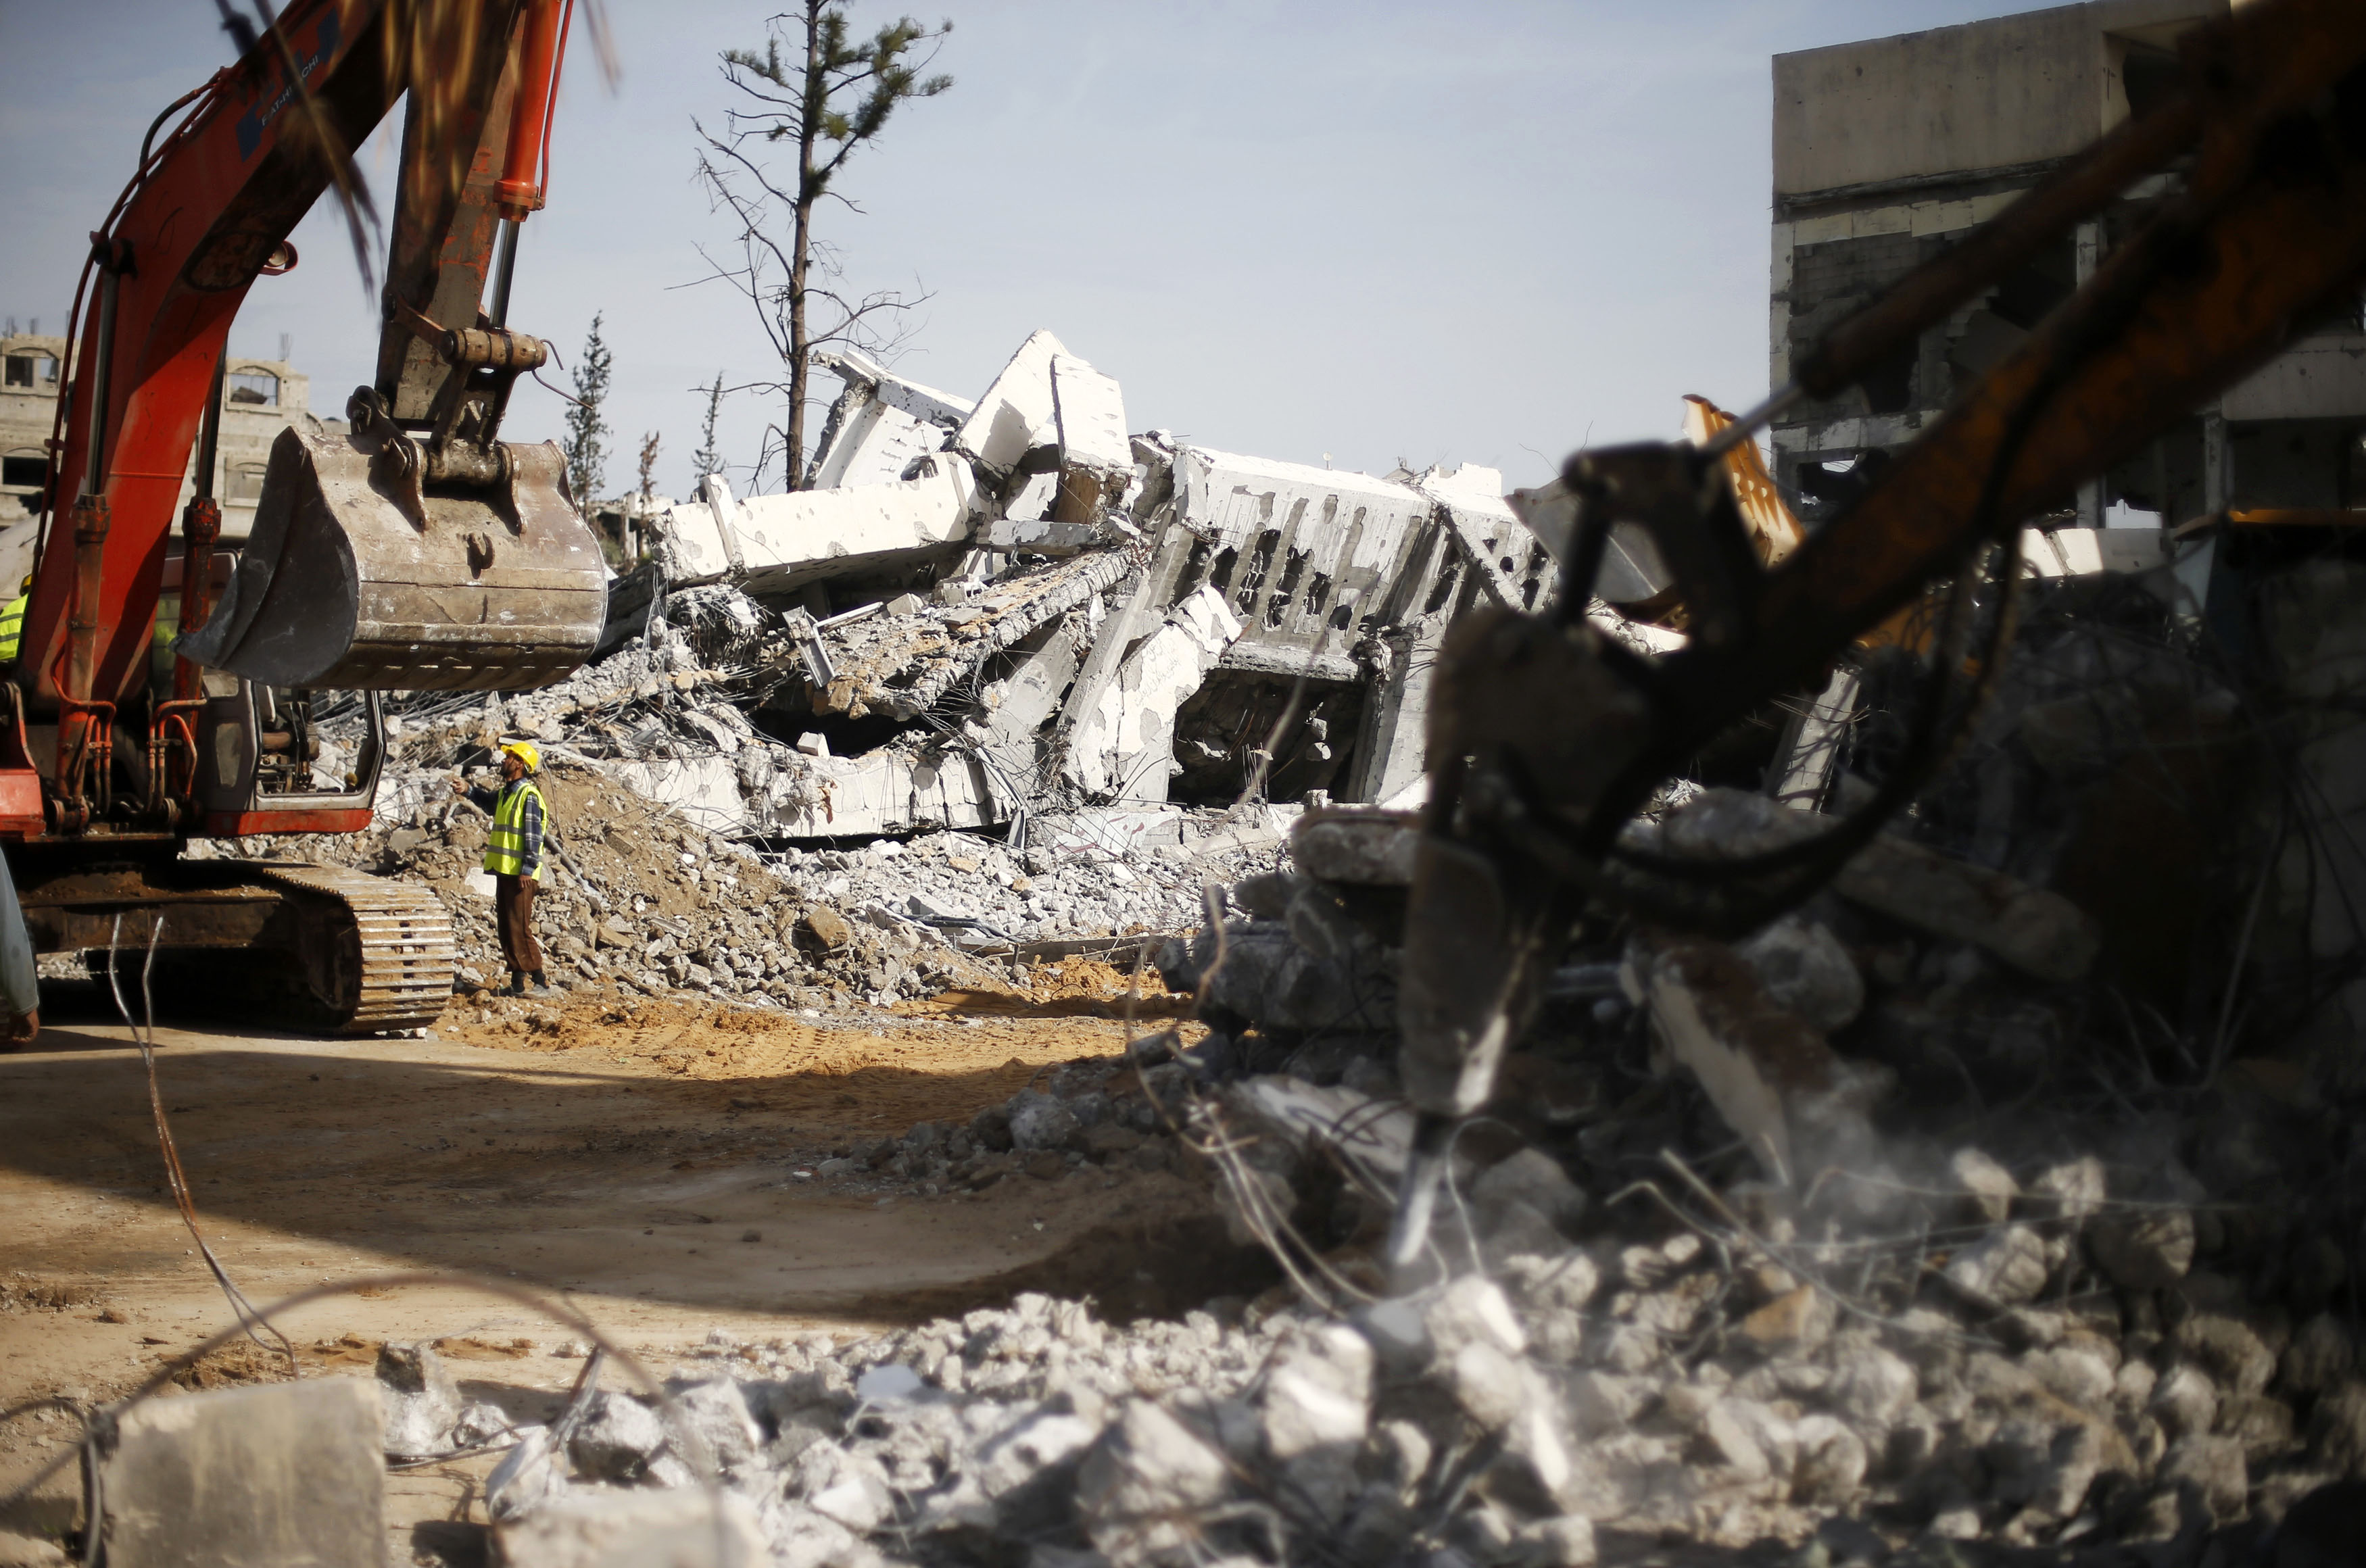 Palestinian workers clear the rubble of a school that witnesses said was destroyed by Israeli shelling during the most recent conflict between Israel and Hamas, in the east of Gaza City, Dec. 3, 2014.